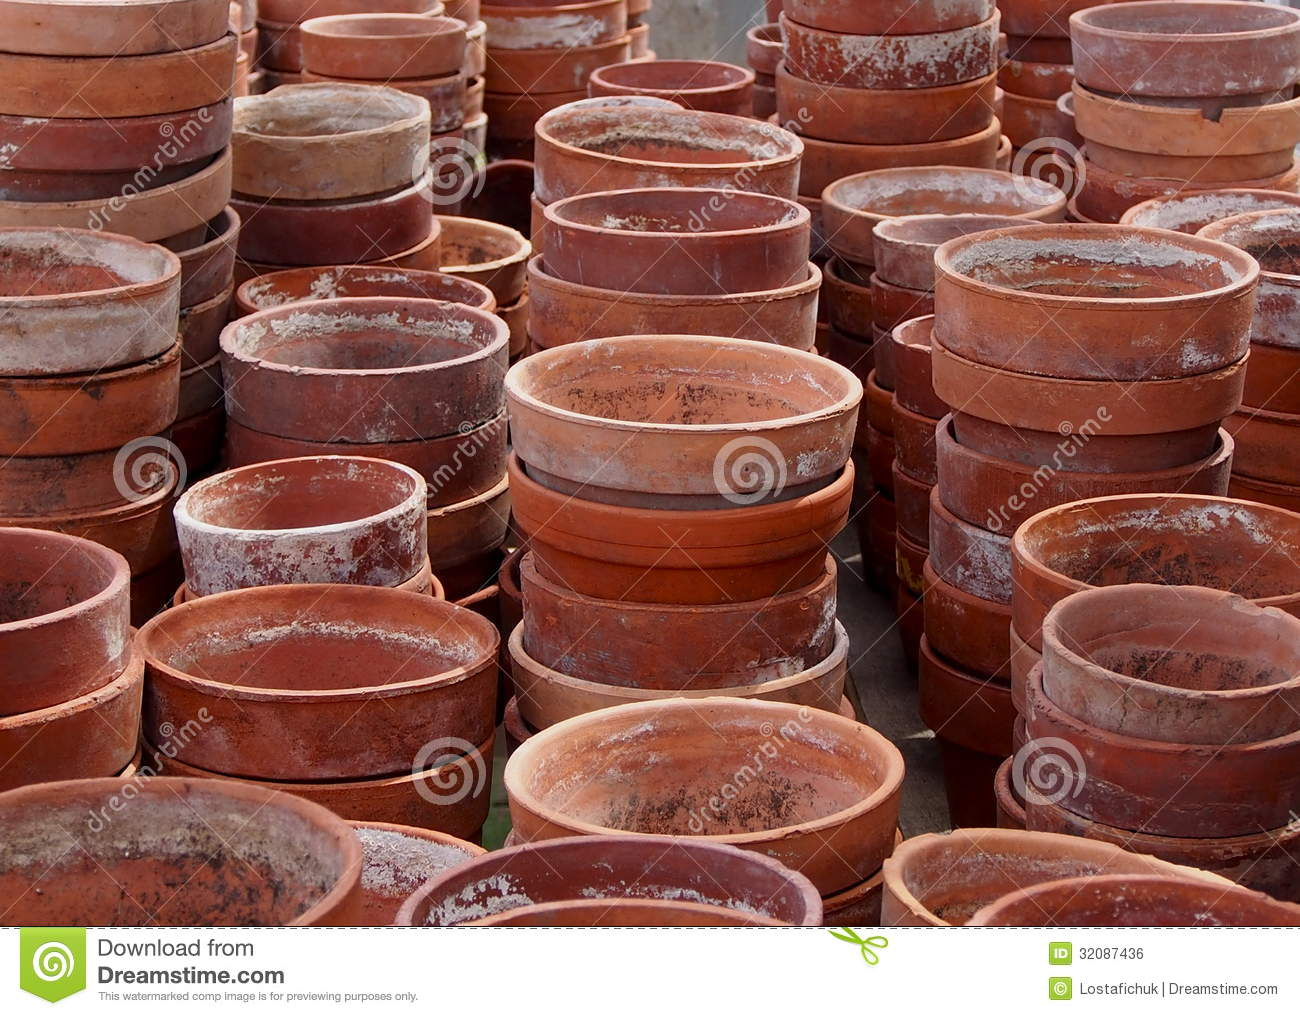 Dreamstime.com & Stacks Of Red Clay Flower Pots Stock Photo - Image of ...